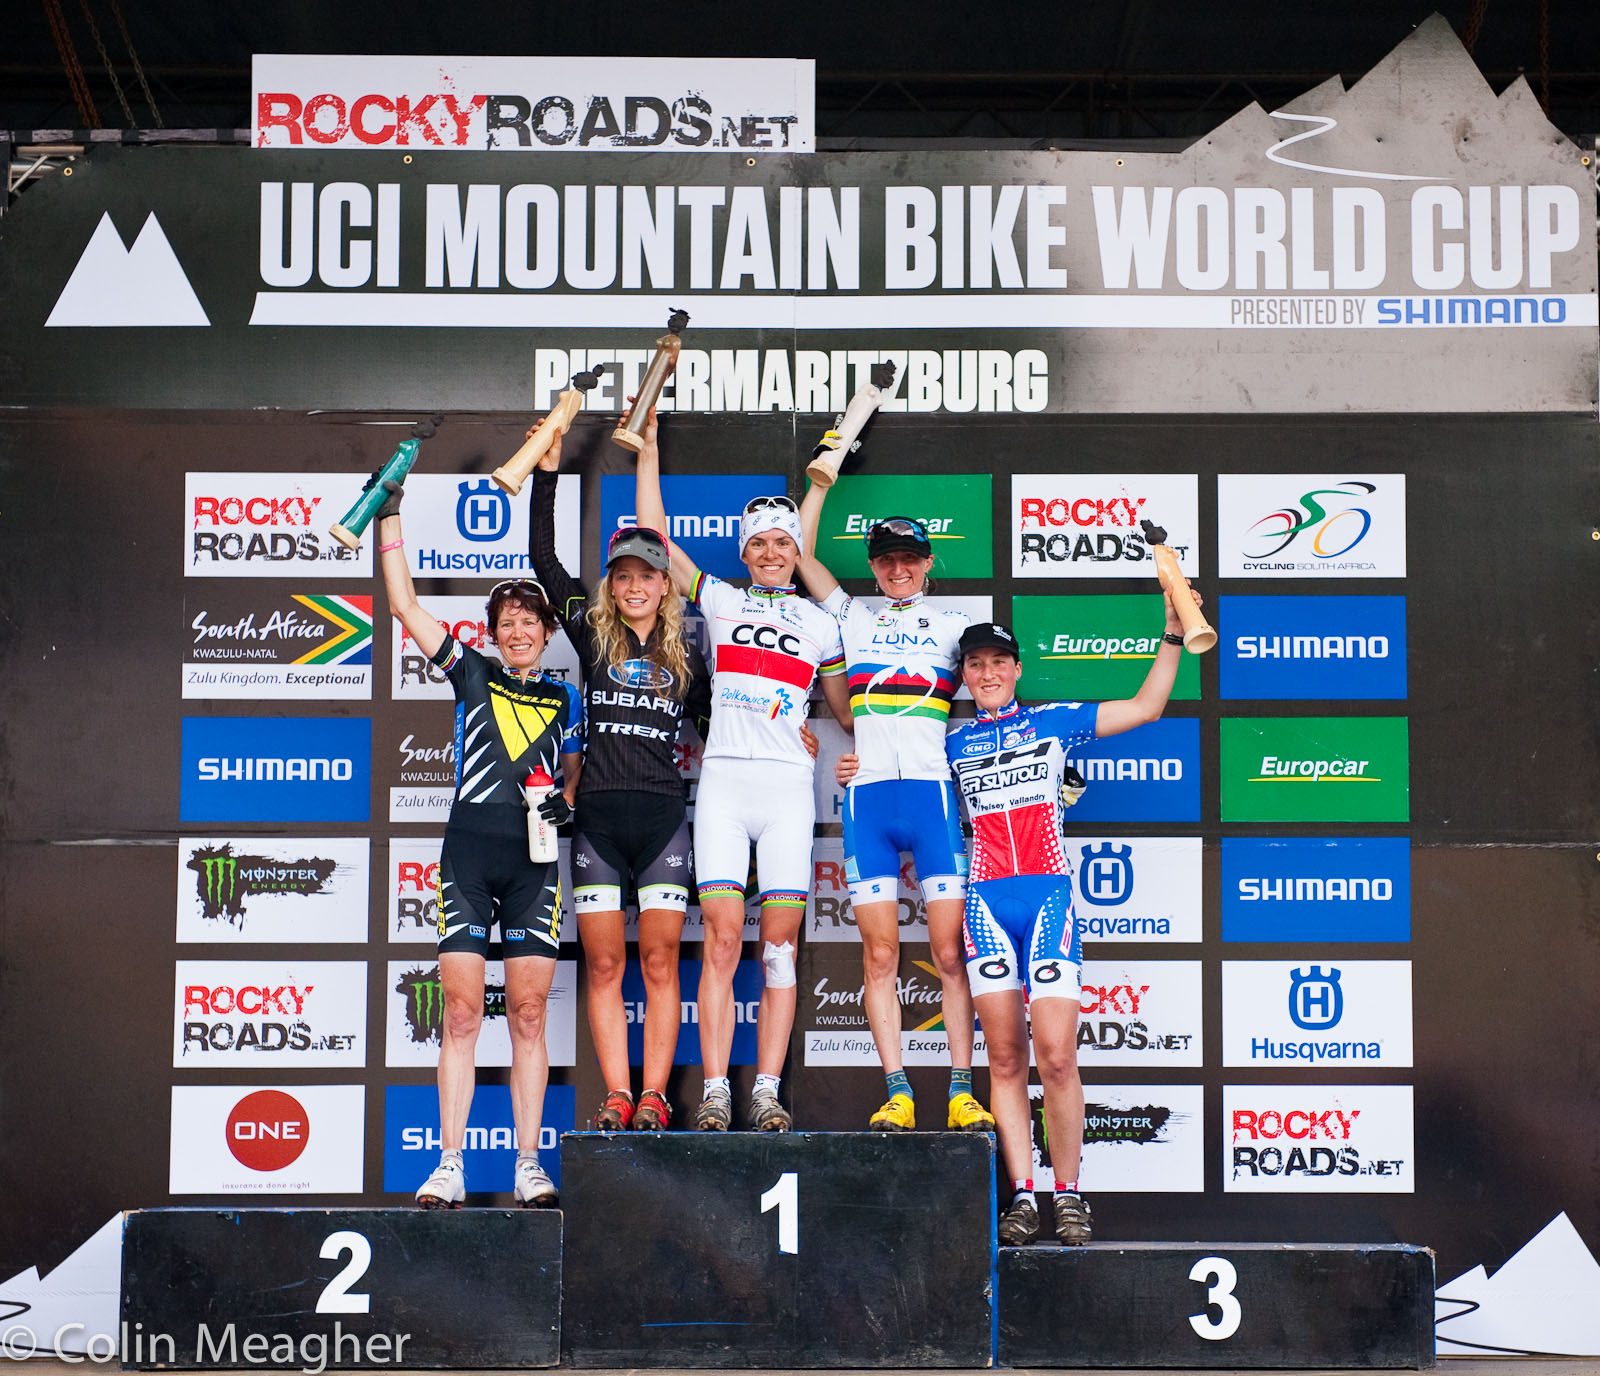 Women's XC Podium at the UCI 2012 MTB World Cup at the Cascades MTB Park in Pietermaritzburg, South Africa.